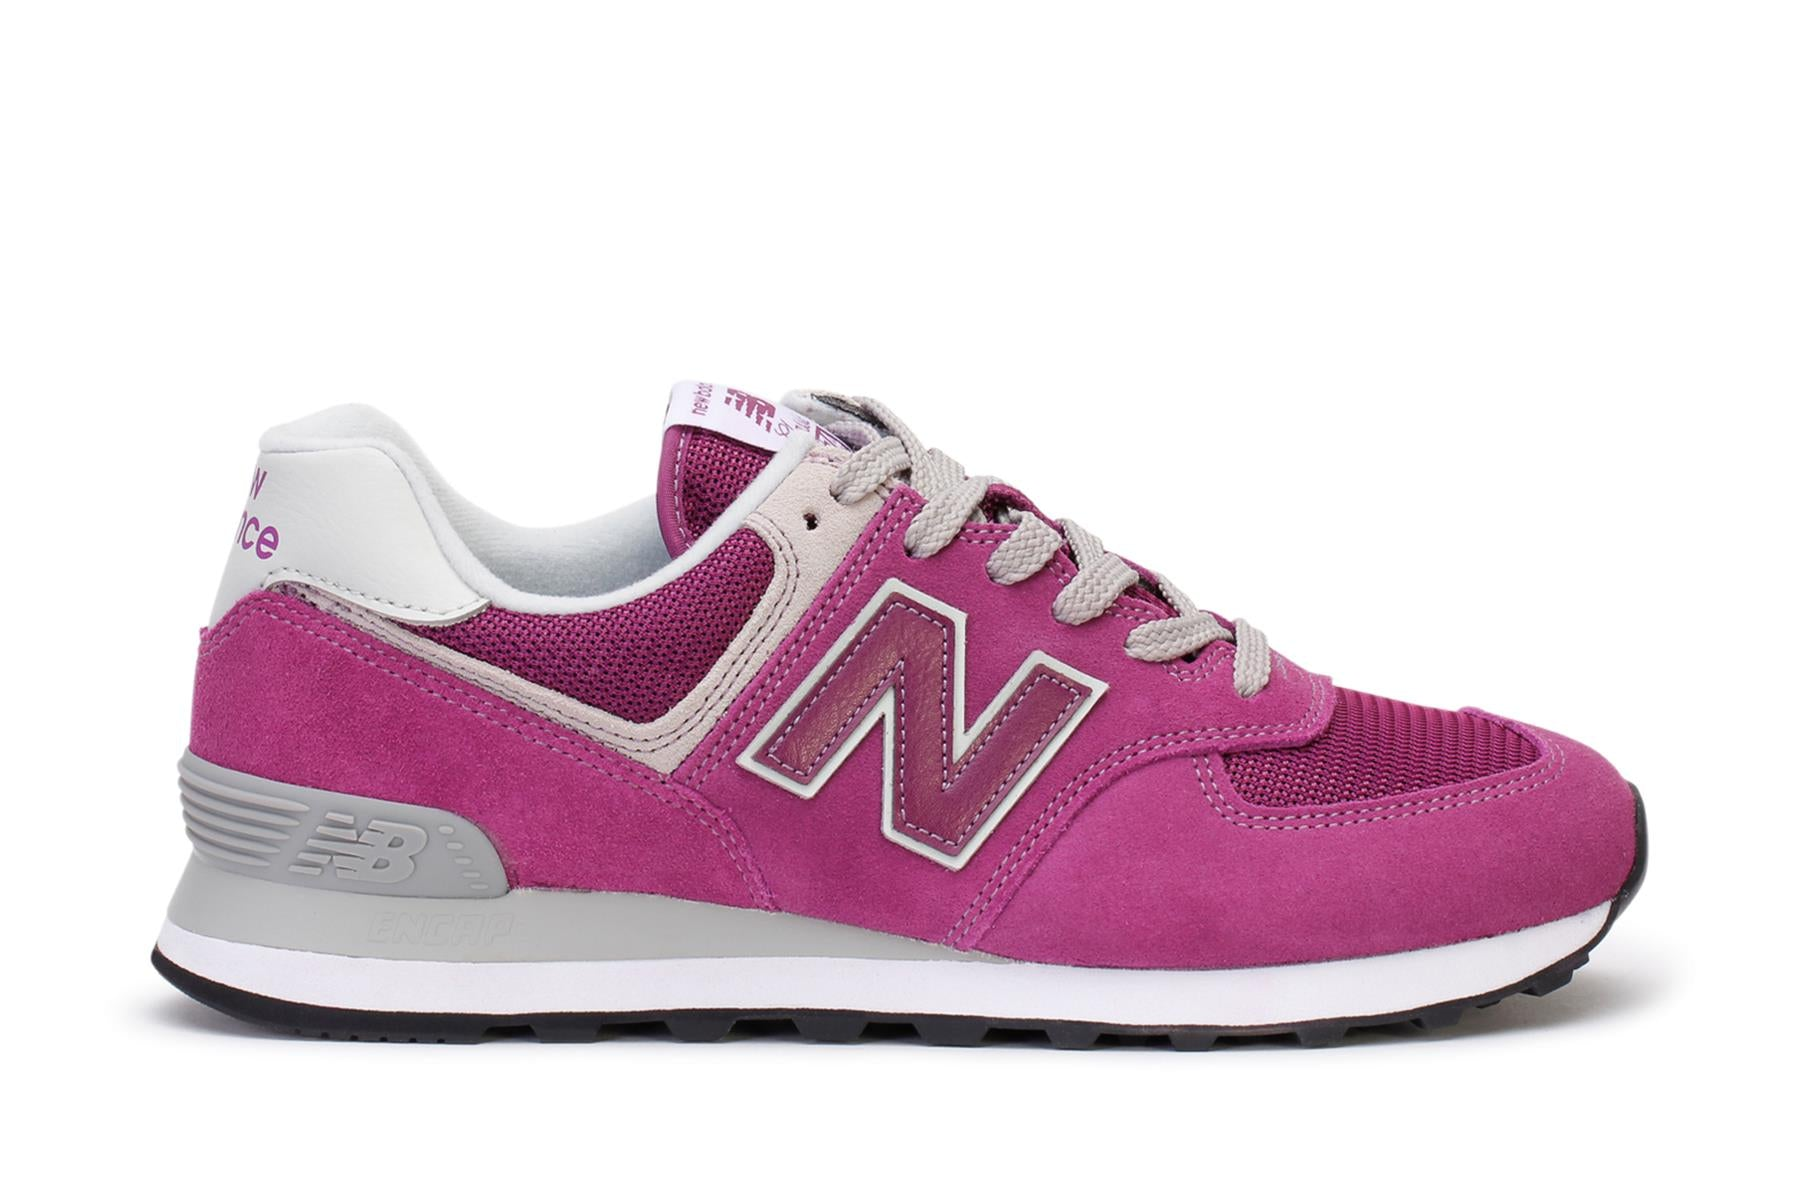 574 Core Plus New Balance Sneakers